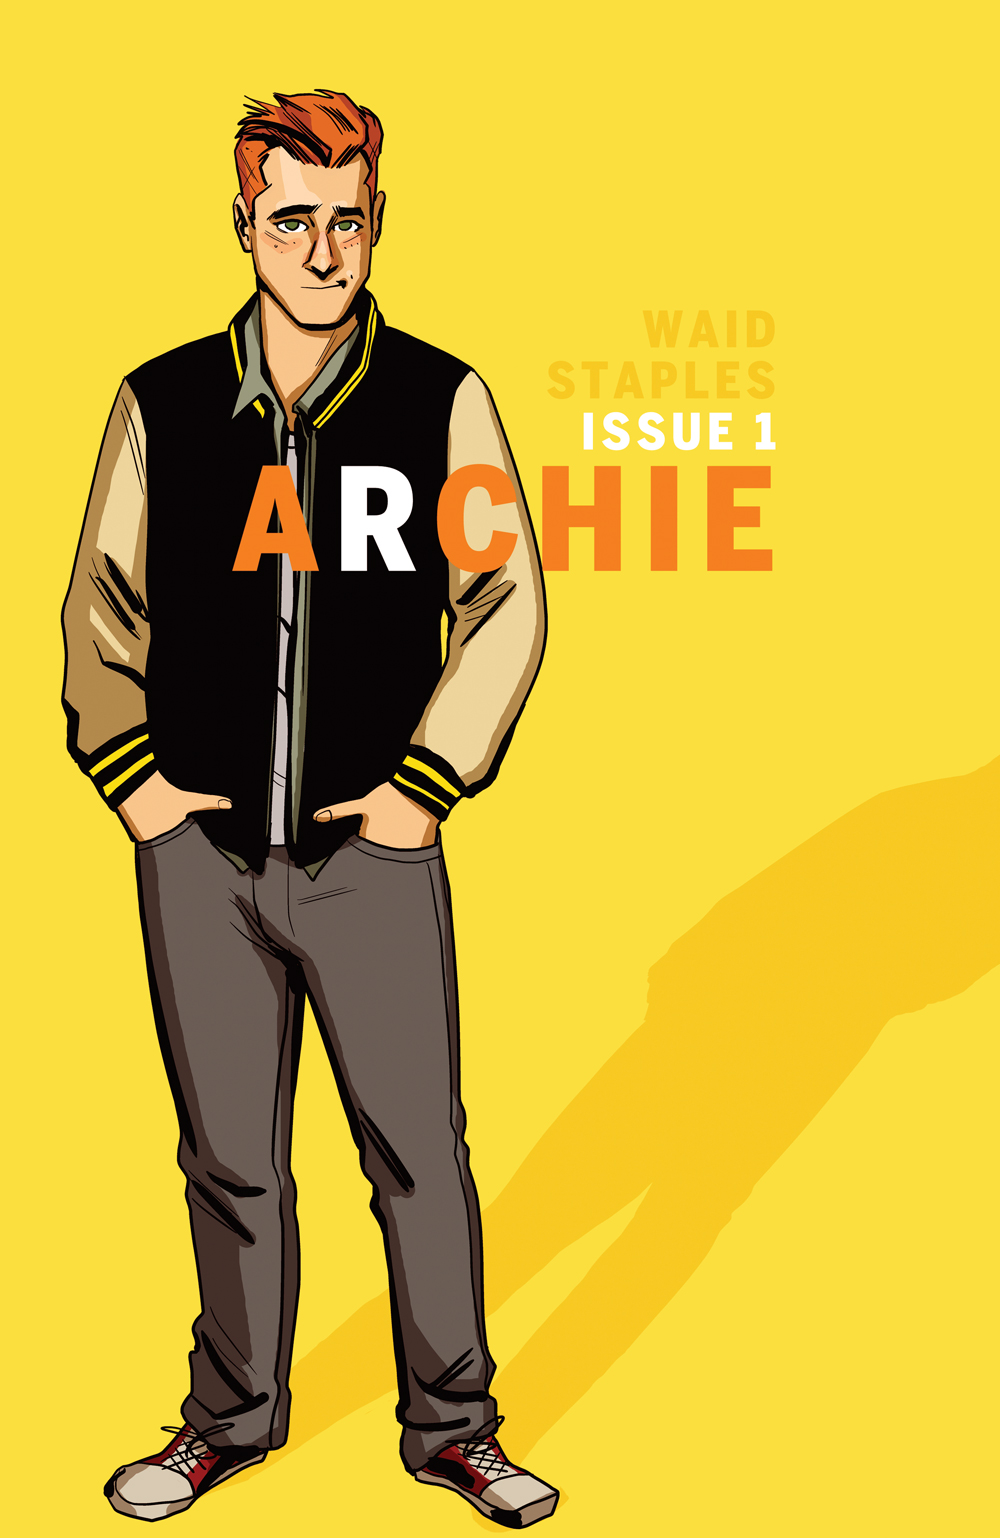 http://archiecomics.com/wp-content/uploads/2015/05/Archie1-ChipZdarskyVariant.jpg